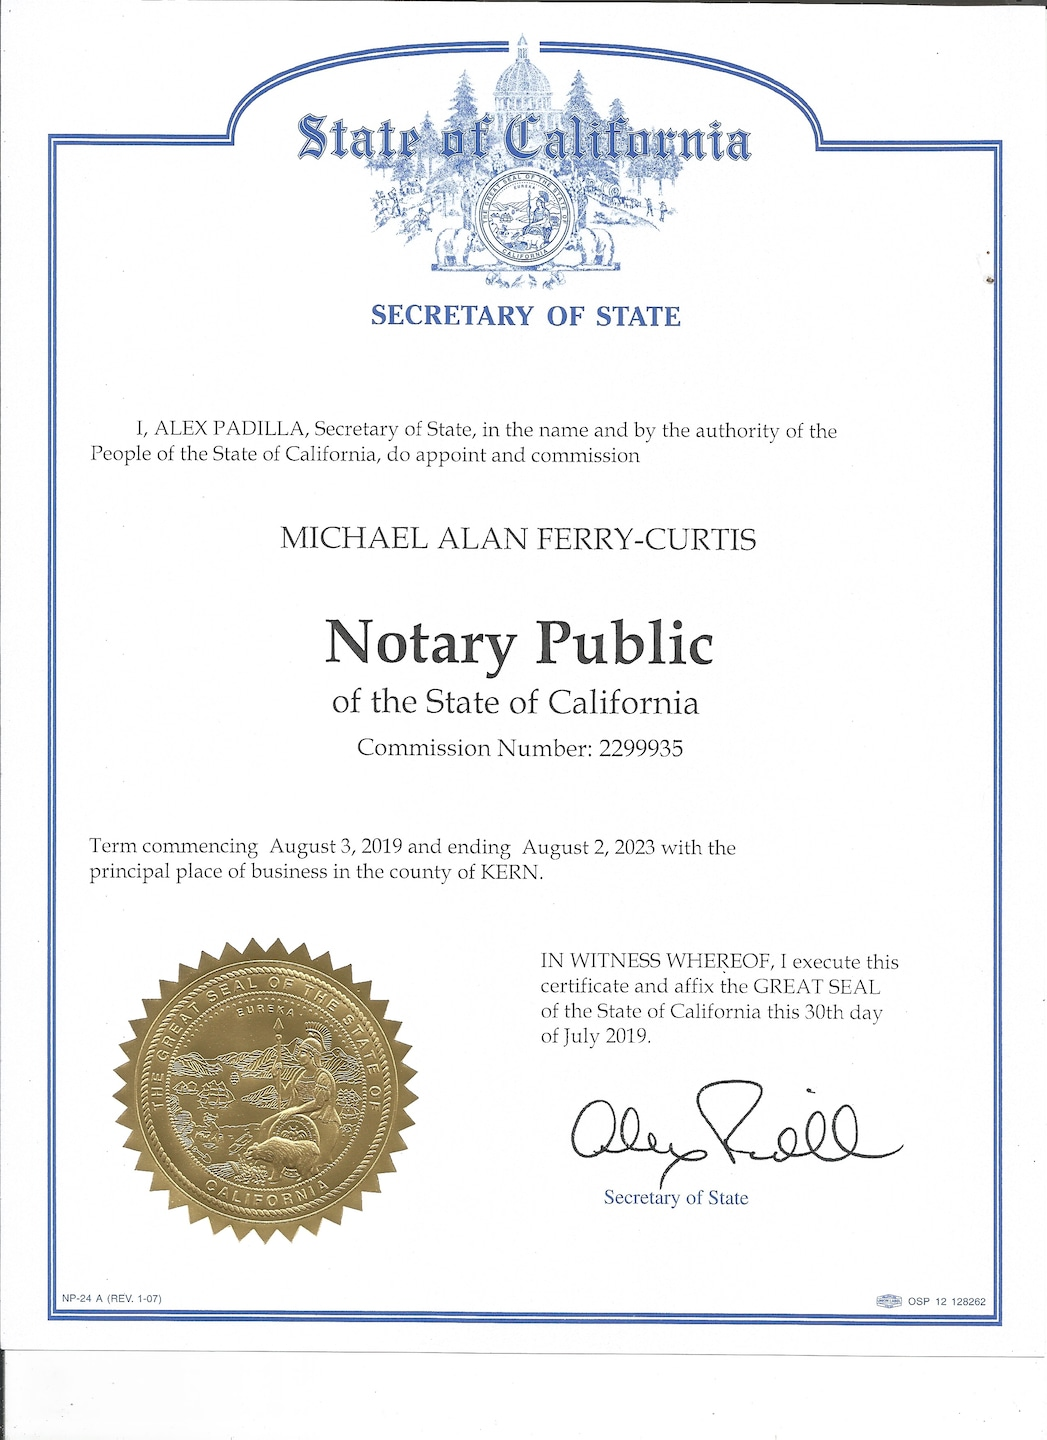 Mike's Notary Public